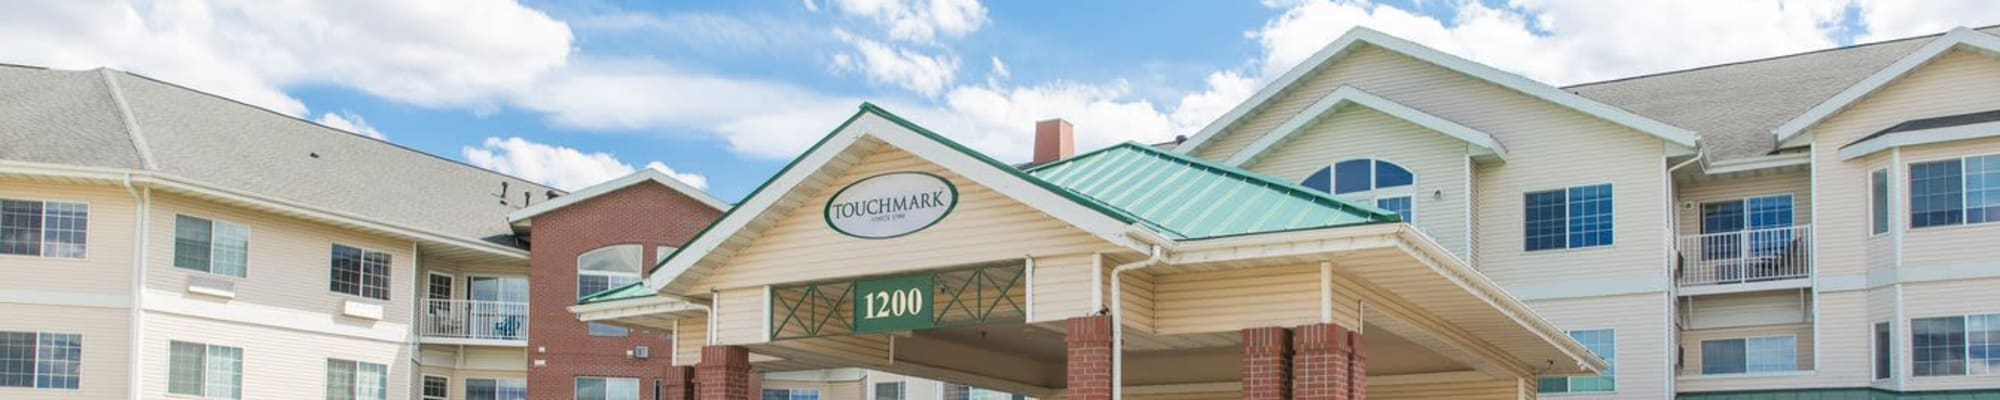 Assisted living at Touchmark at Harwood Groves in Fargo, North Dakota